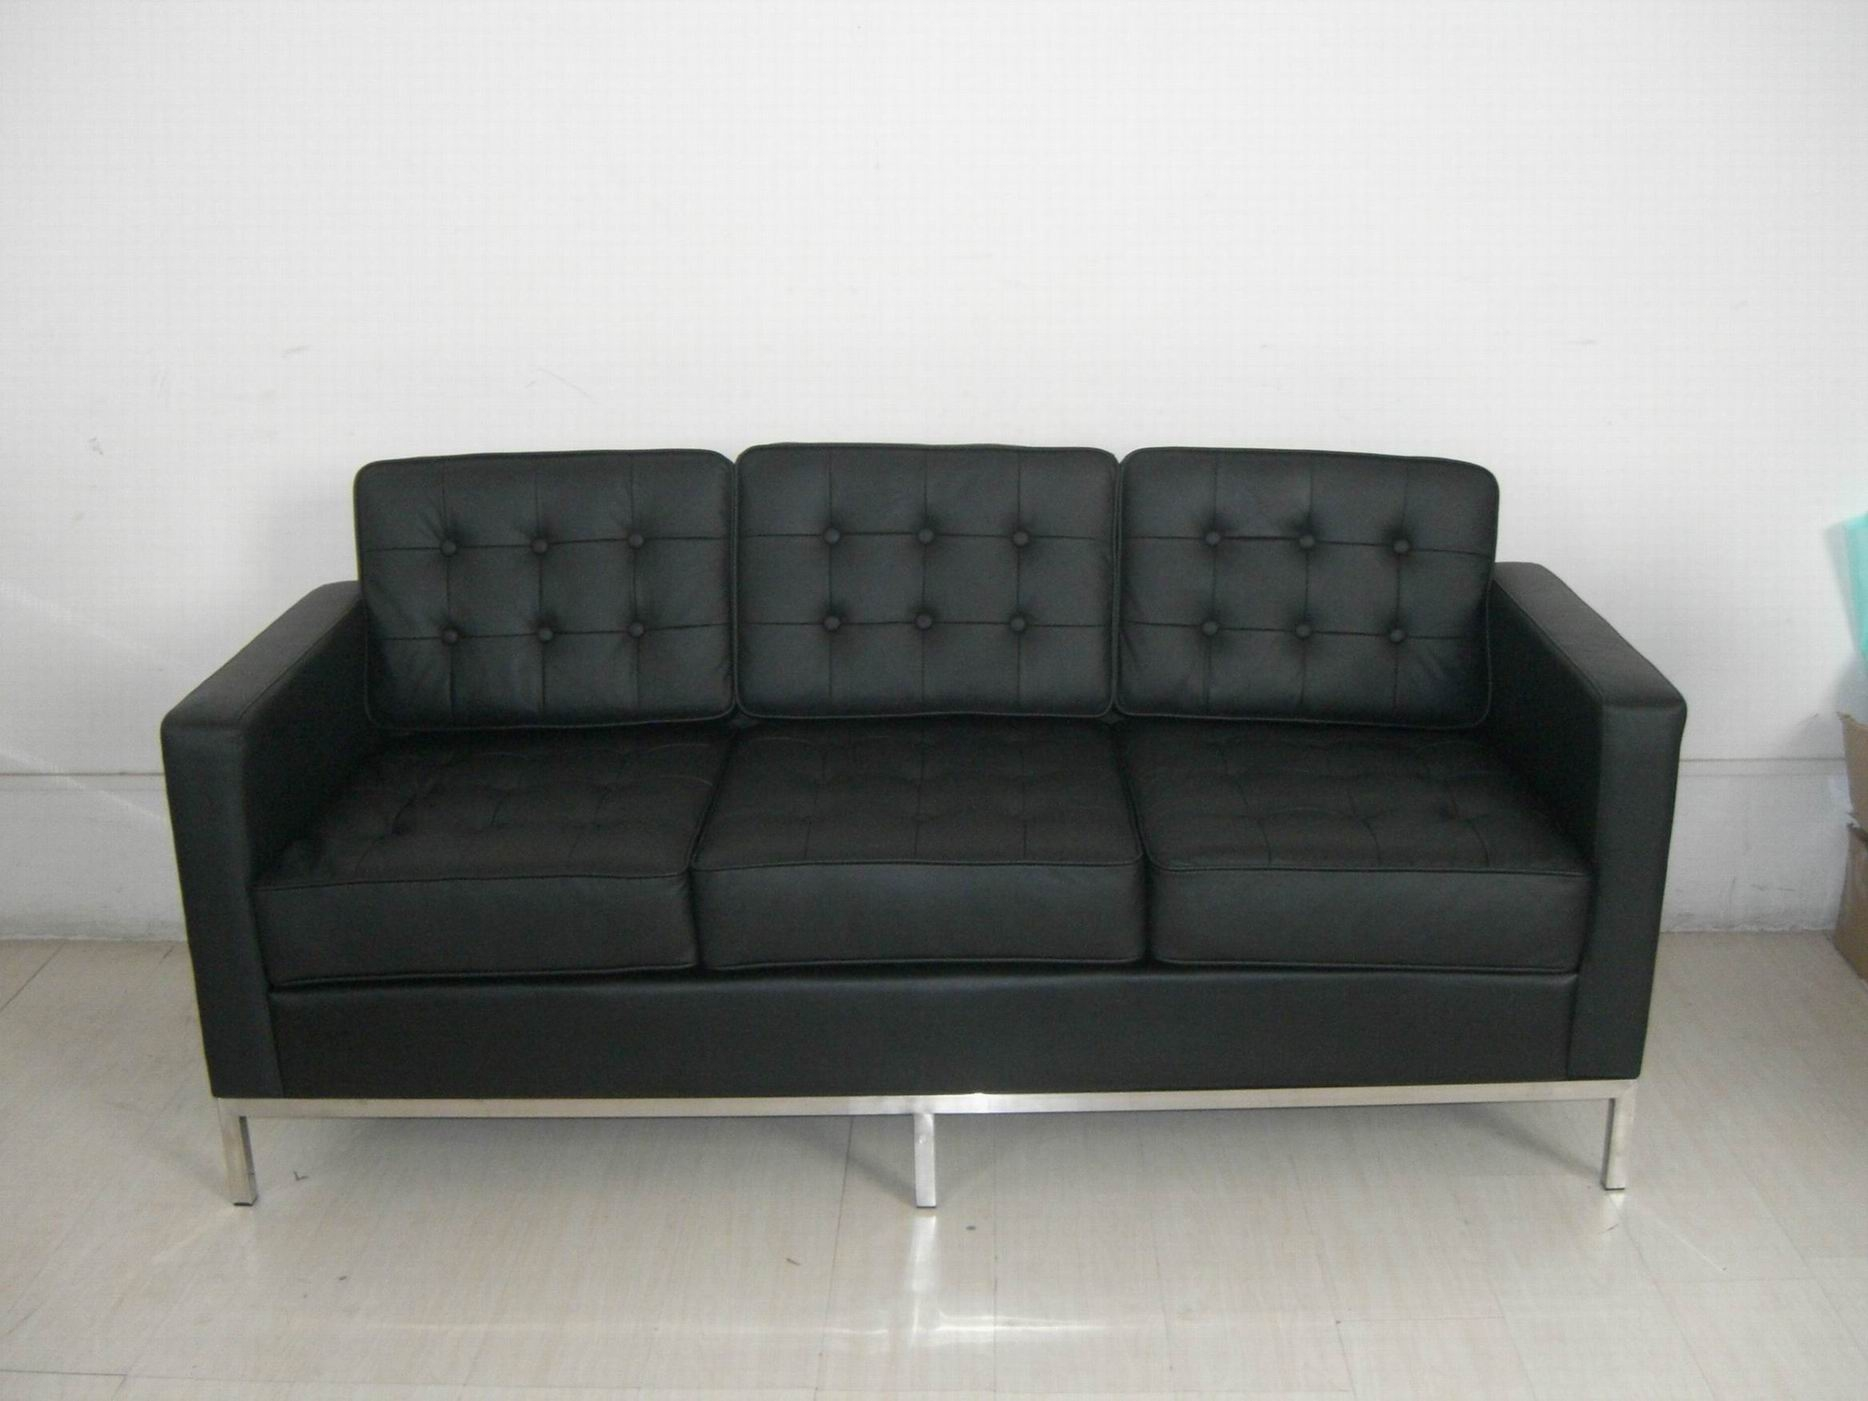 Red Leather Sofa Black Leather Sofas S3net Sectional Sofas Throughout Florence Leather Sofas (Image 11 of 15)